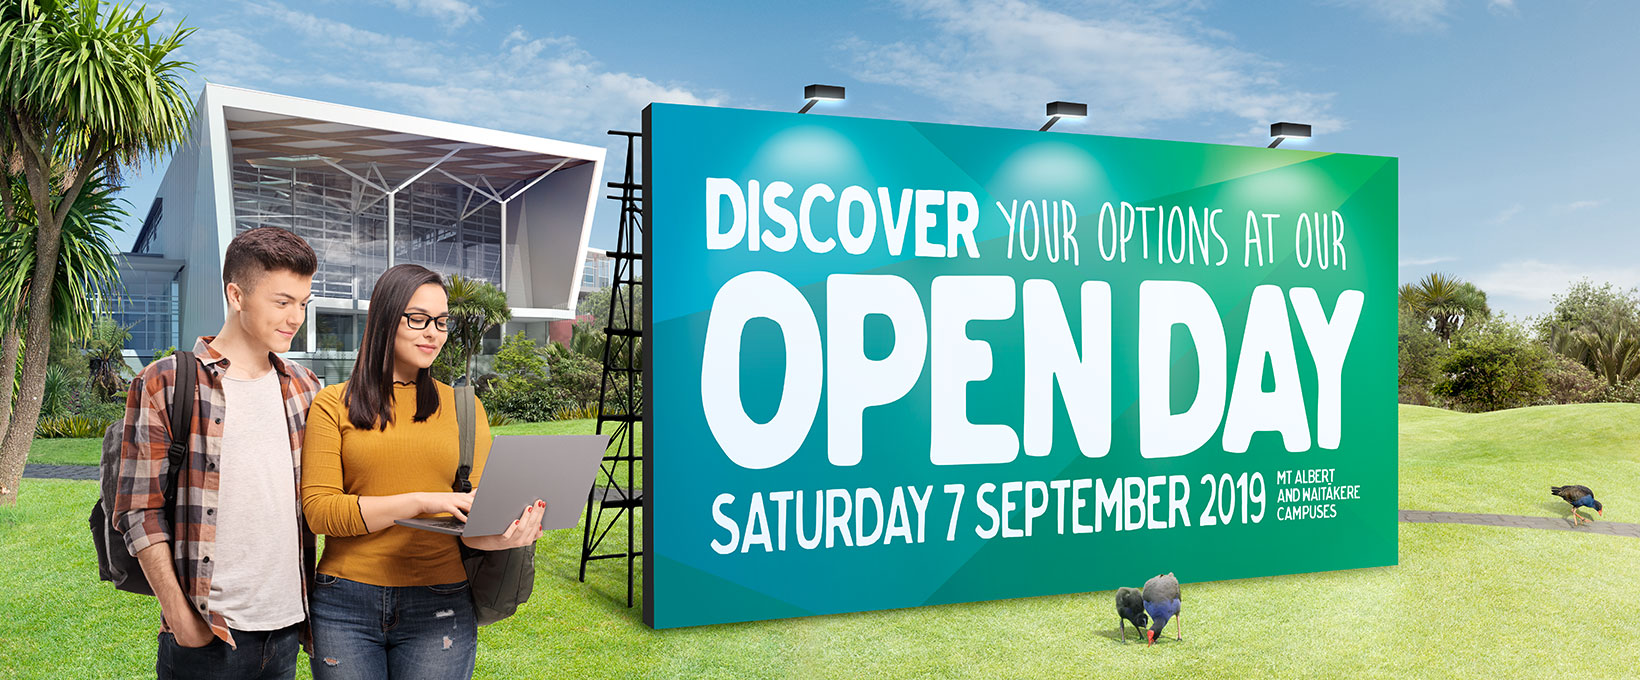 Come to Unitec's Open Day this Saturday, 7th of September! Study in Auckland, New Zealand with Unitec. Certificate, Diploma, Degree or Postgraduate study